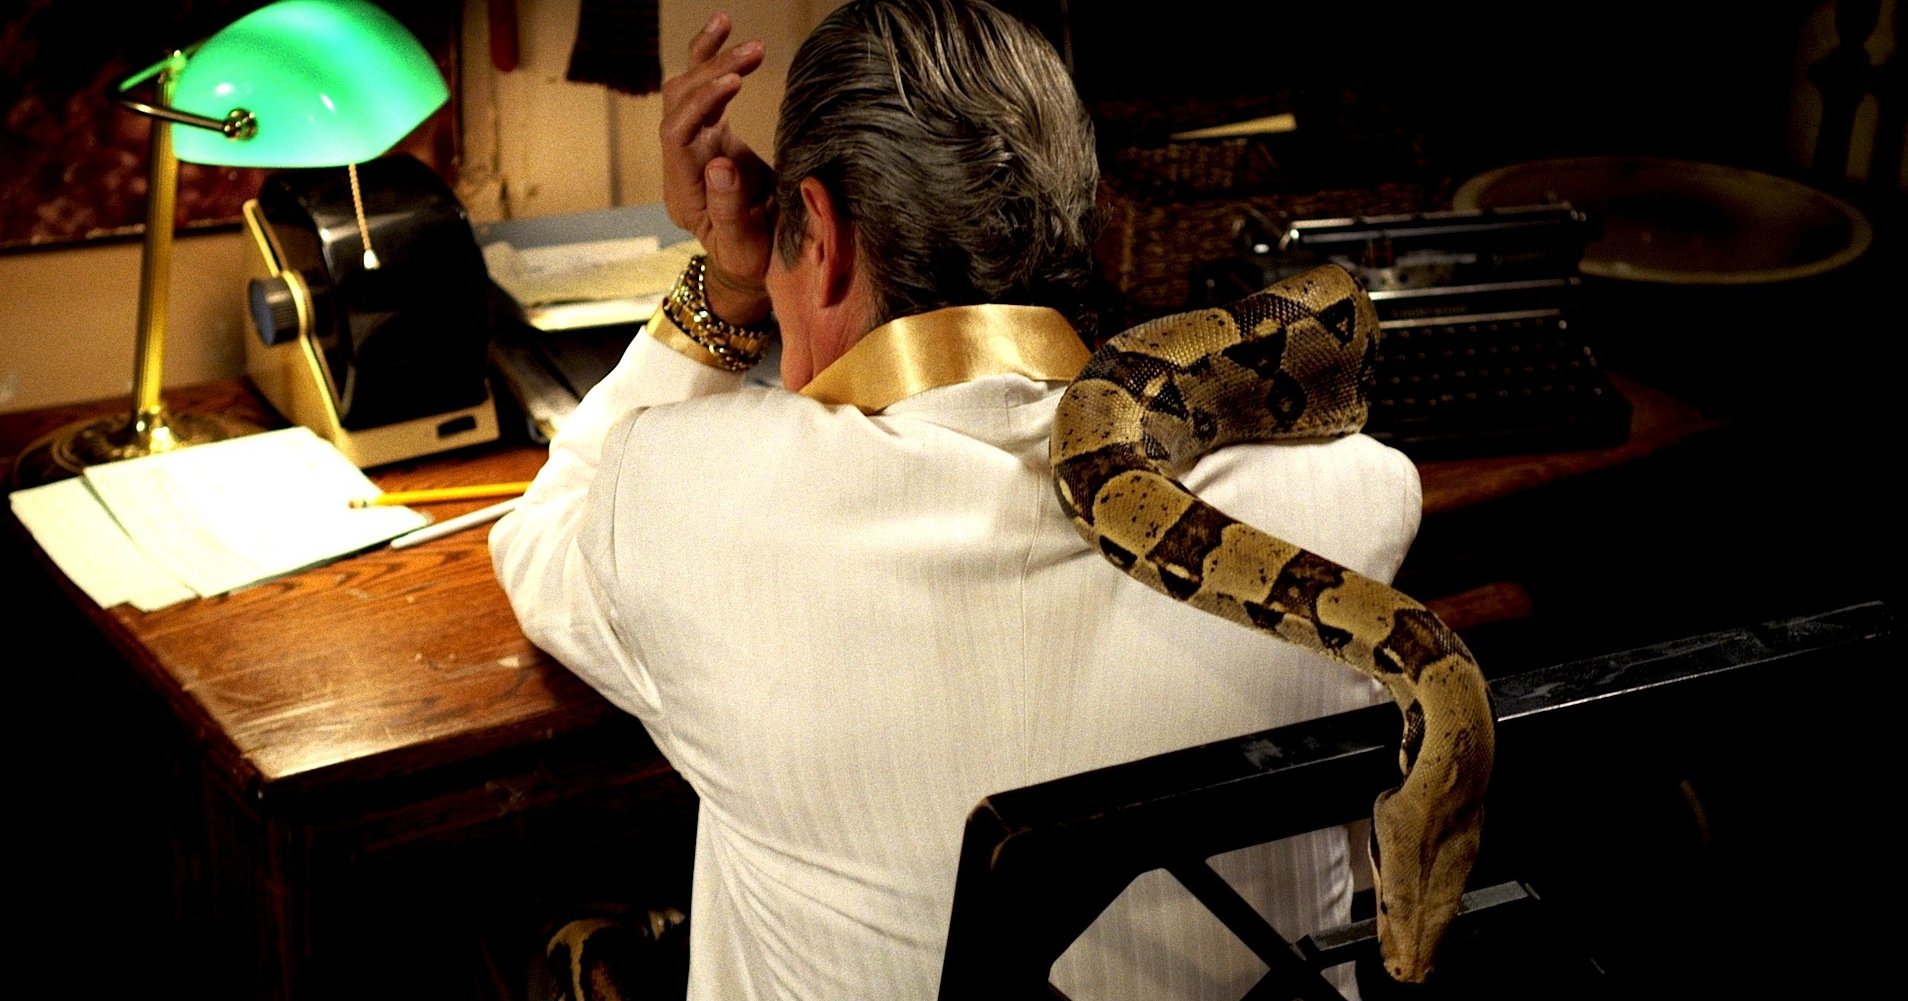 earl-and-his-snake-new-years-eve-in-his-office.jpg